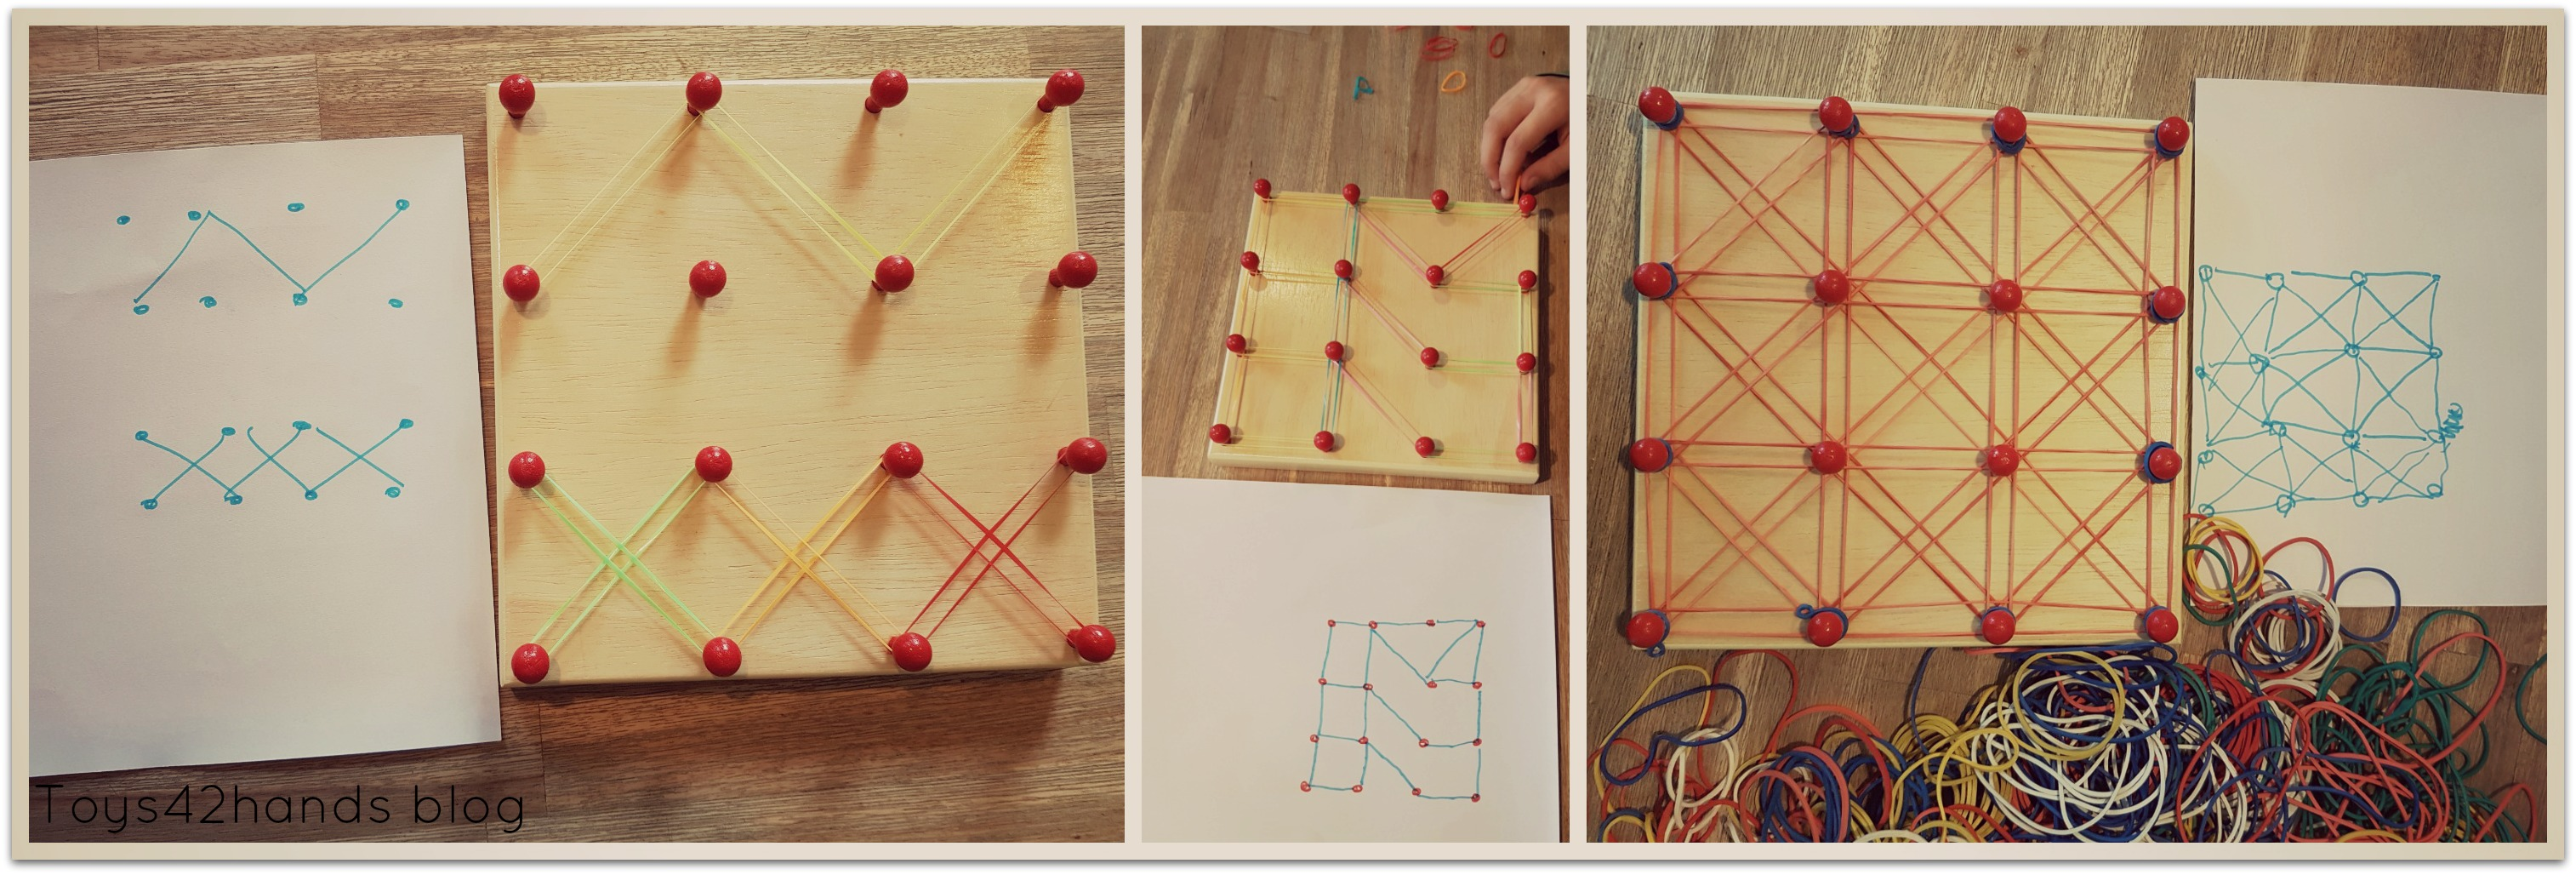 geoboard-voorbeeld-collage